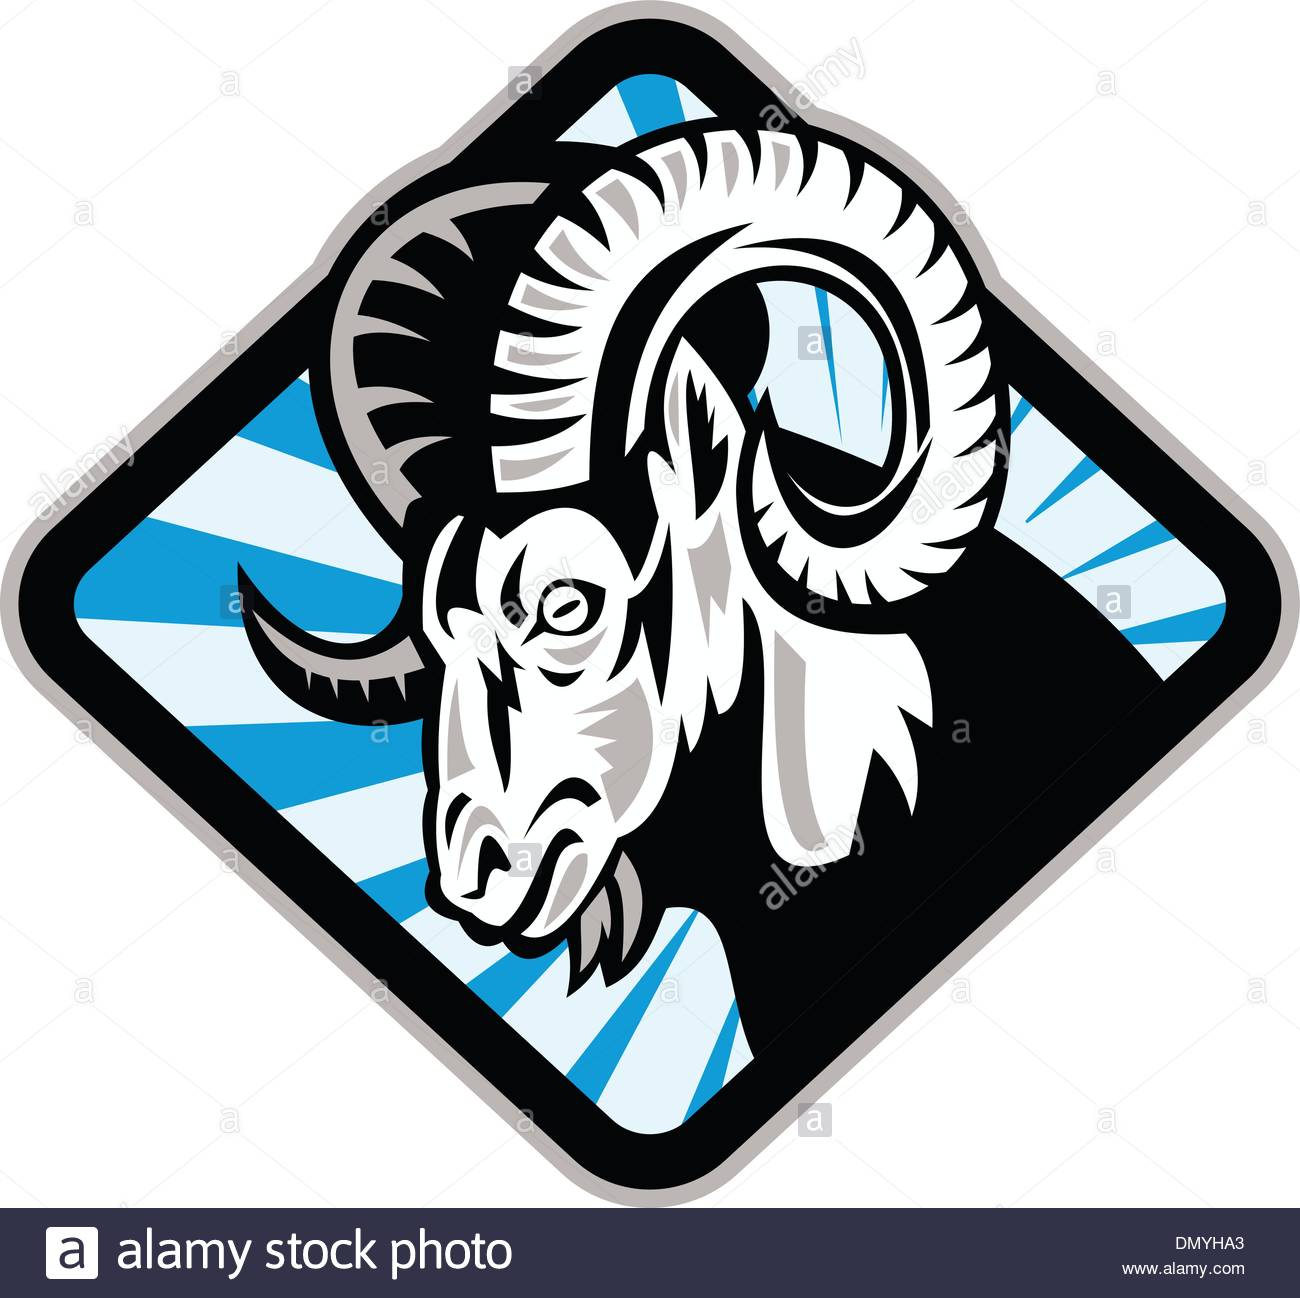 1300x1298 Bighorn Stock Vector Images